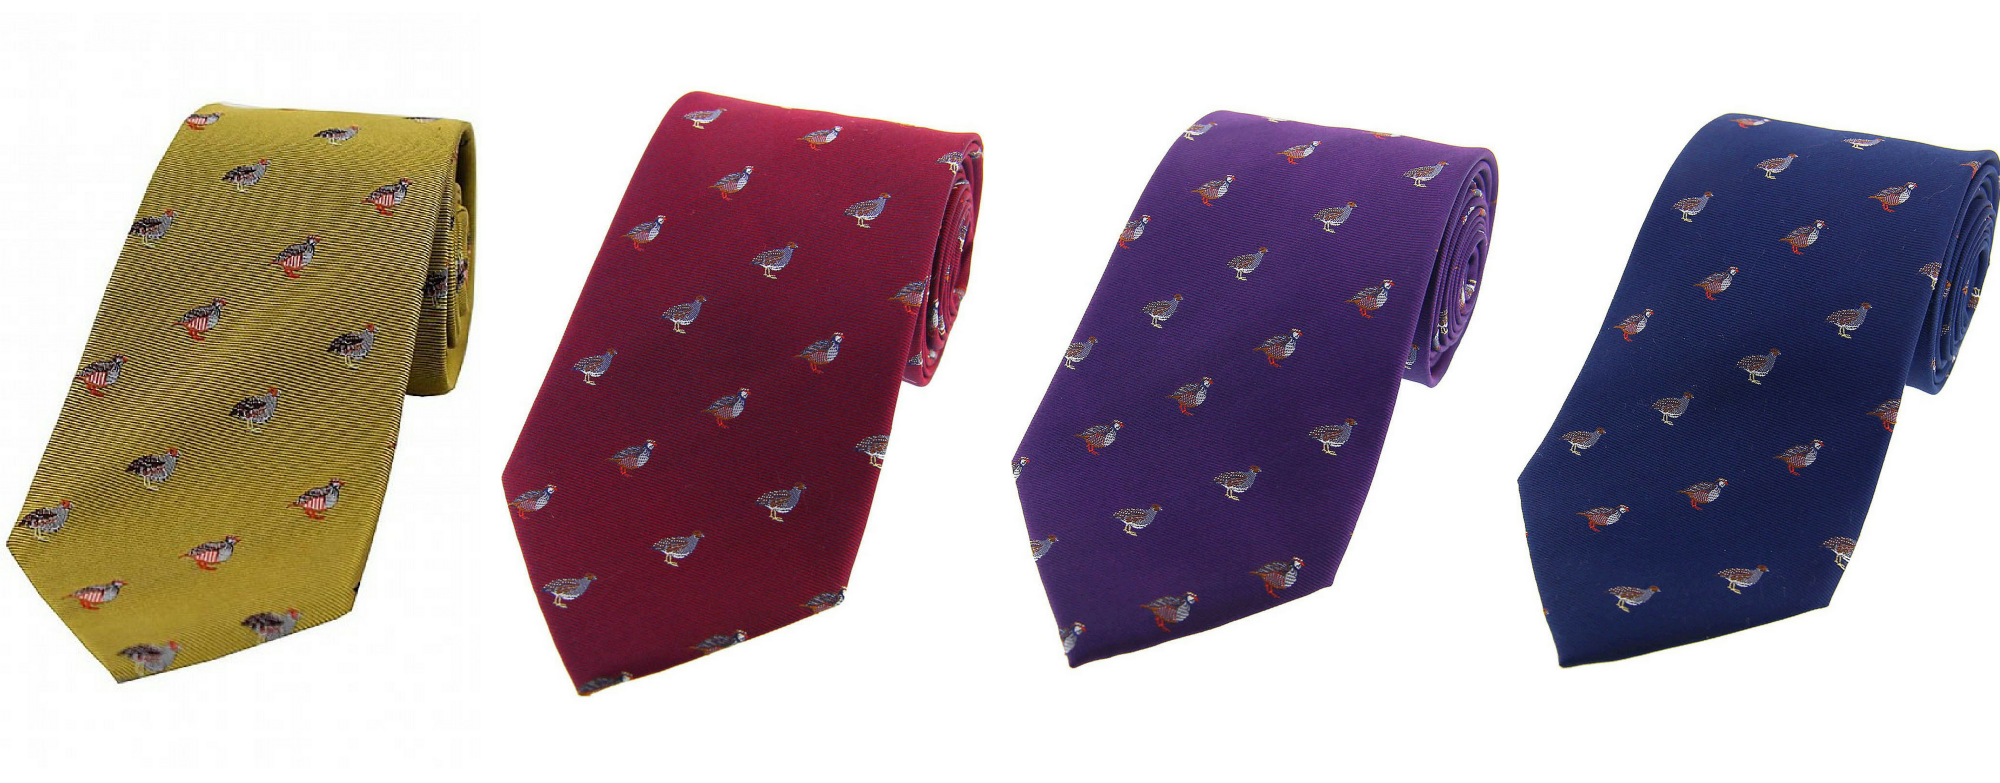 silk partridge ties in yellow, red, purple and navy